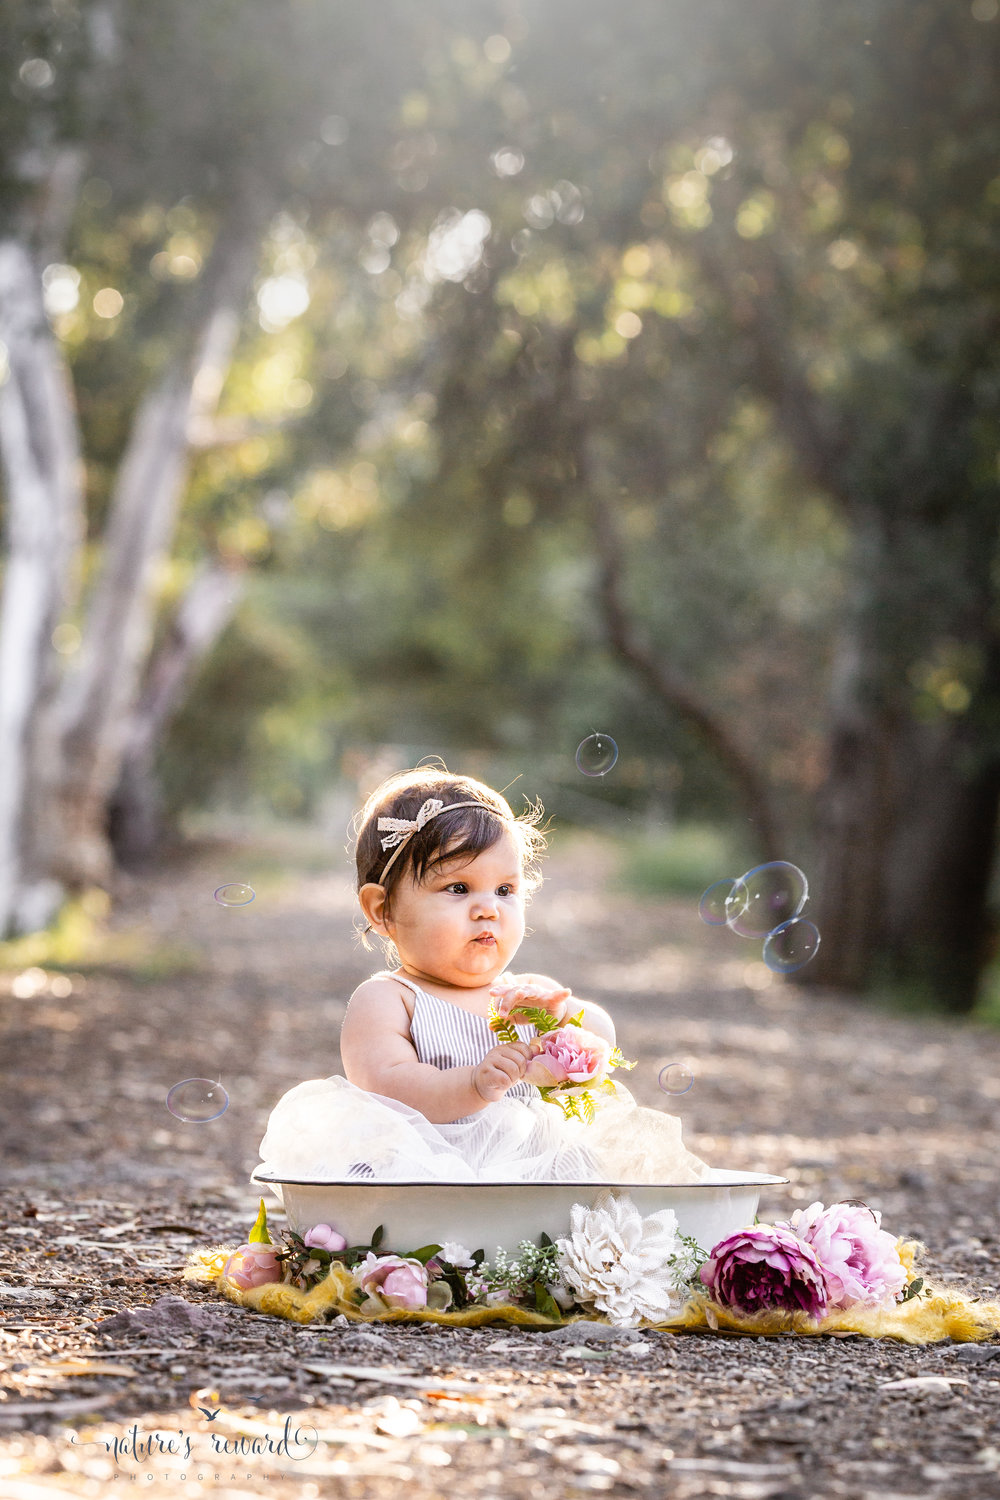 Baby girl sits in a bowl surrounded by flowers on a tree lined path with bubbles in this portrait by Nature's Reward Photography